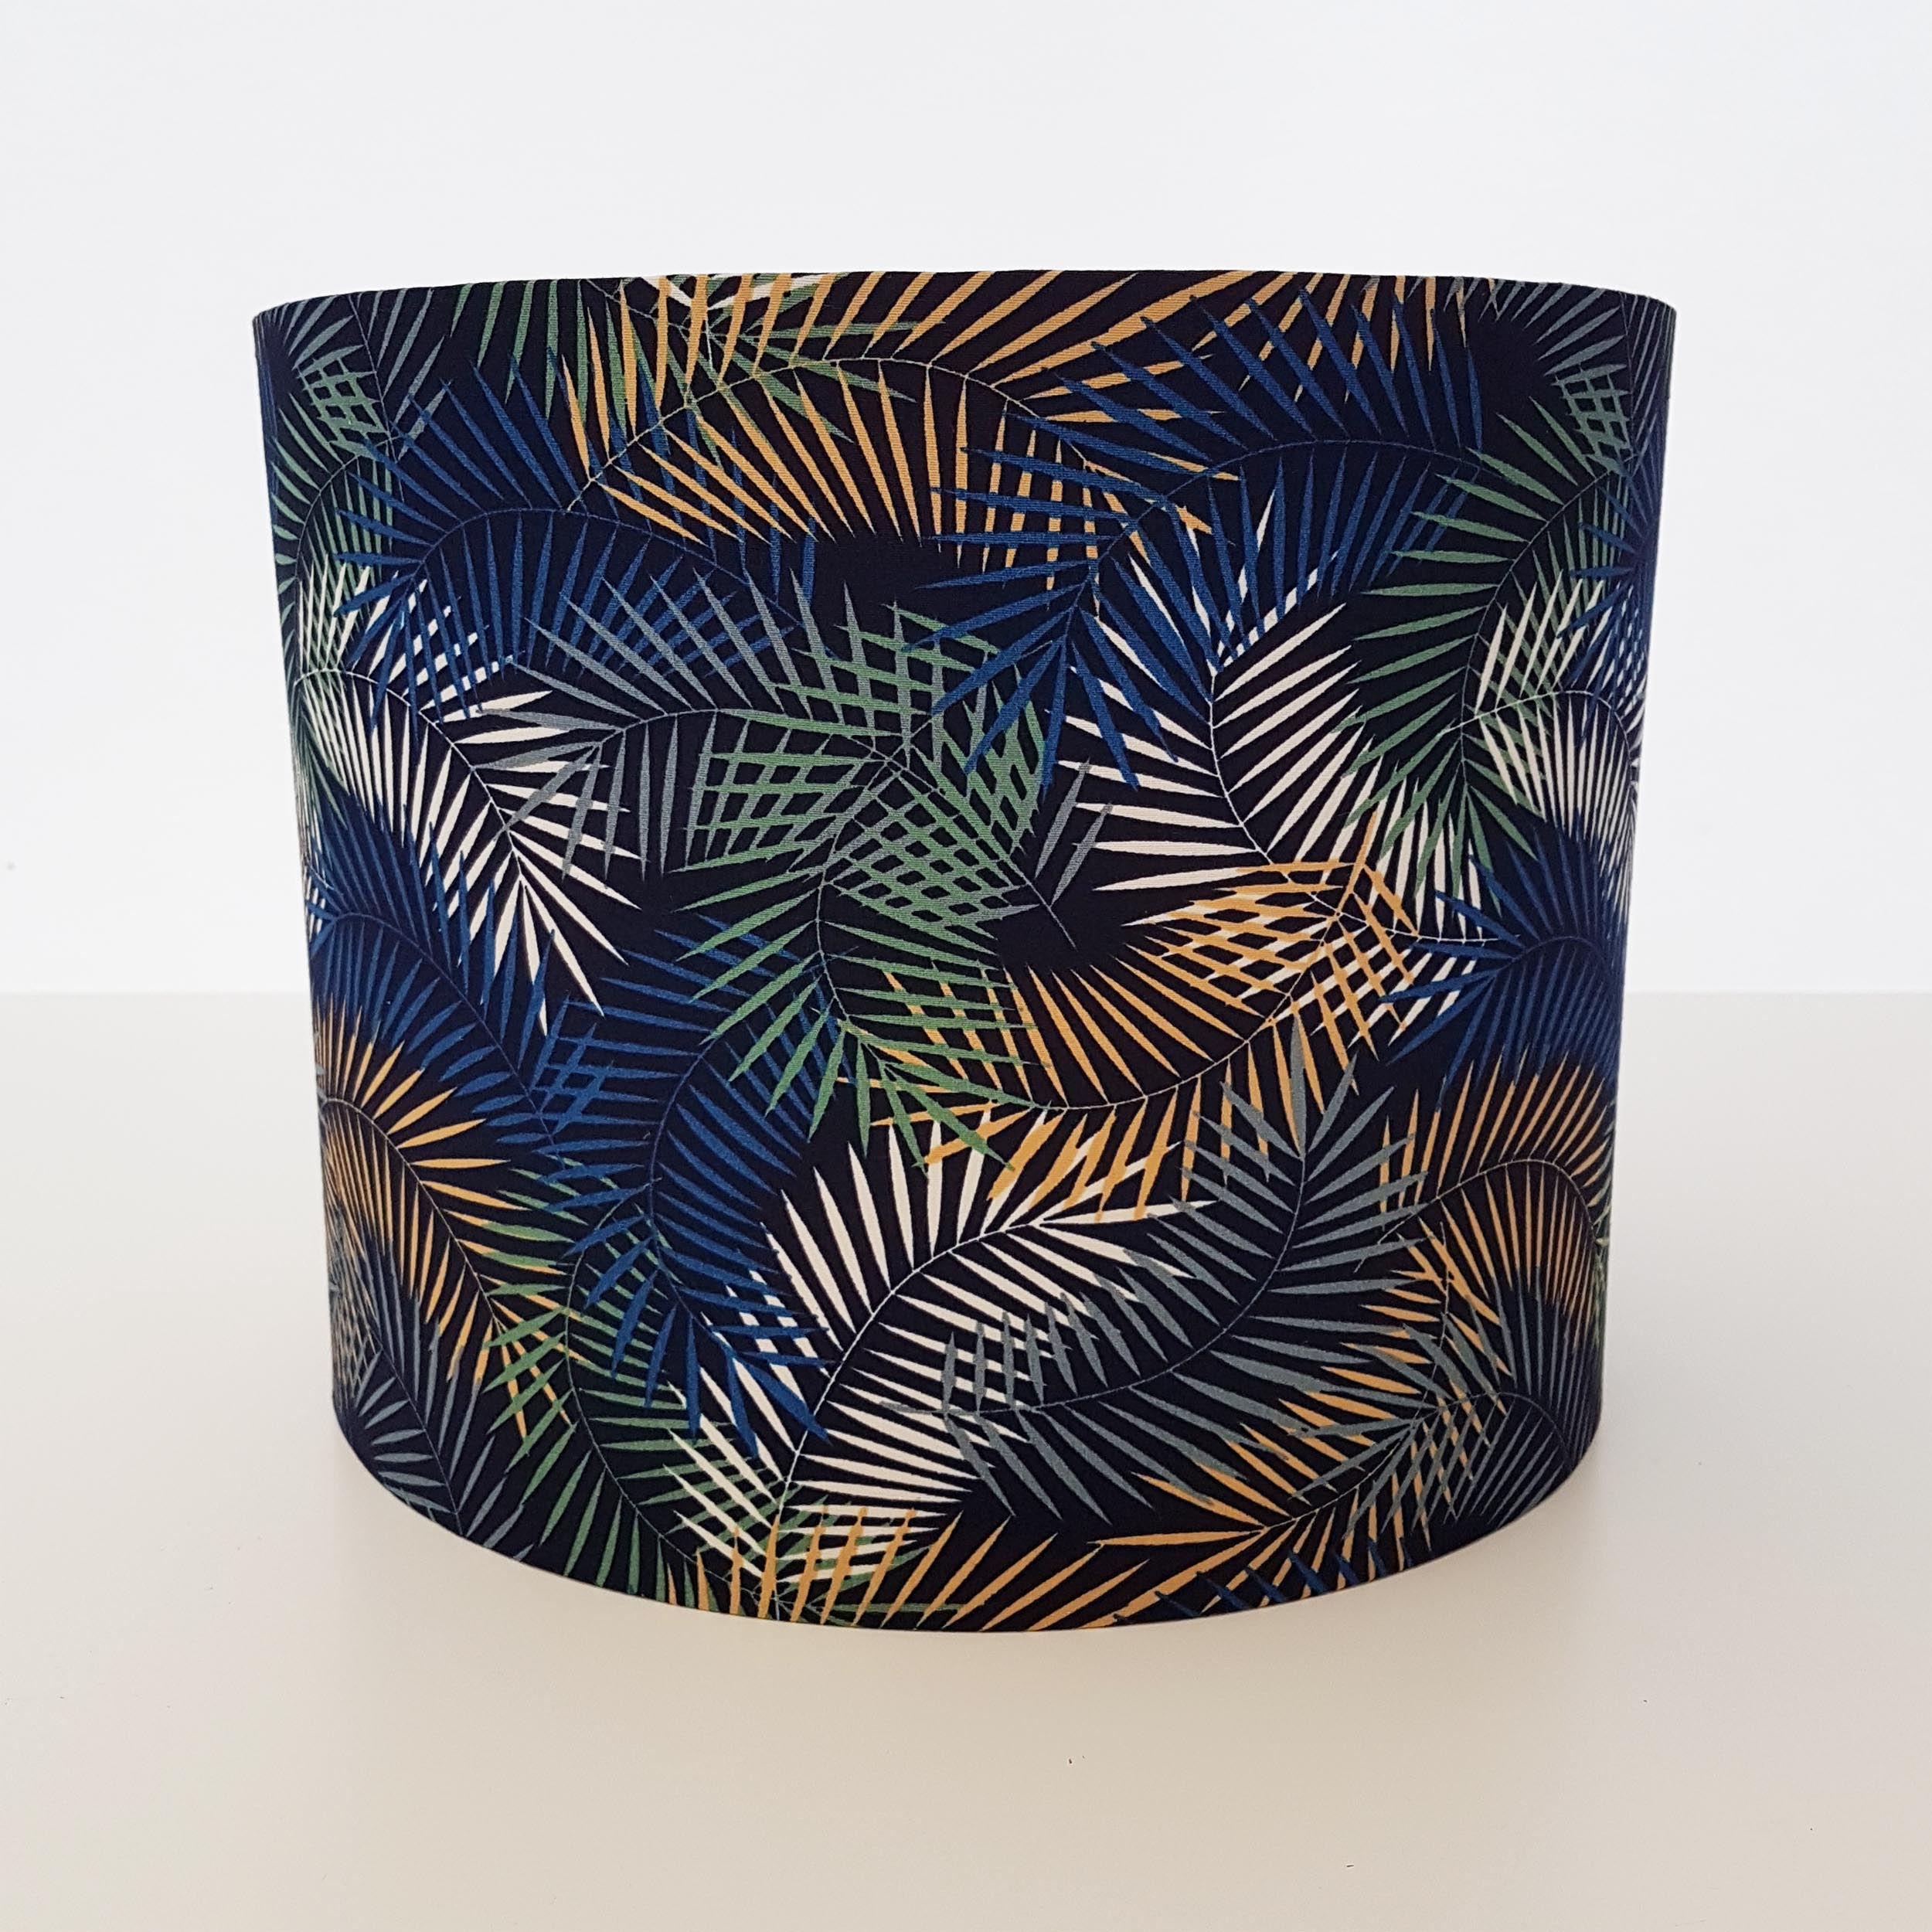 Leaves Lampshade in a Navy Blue Colourway, Cotton